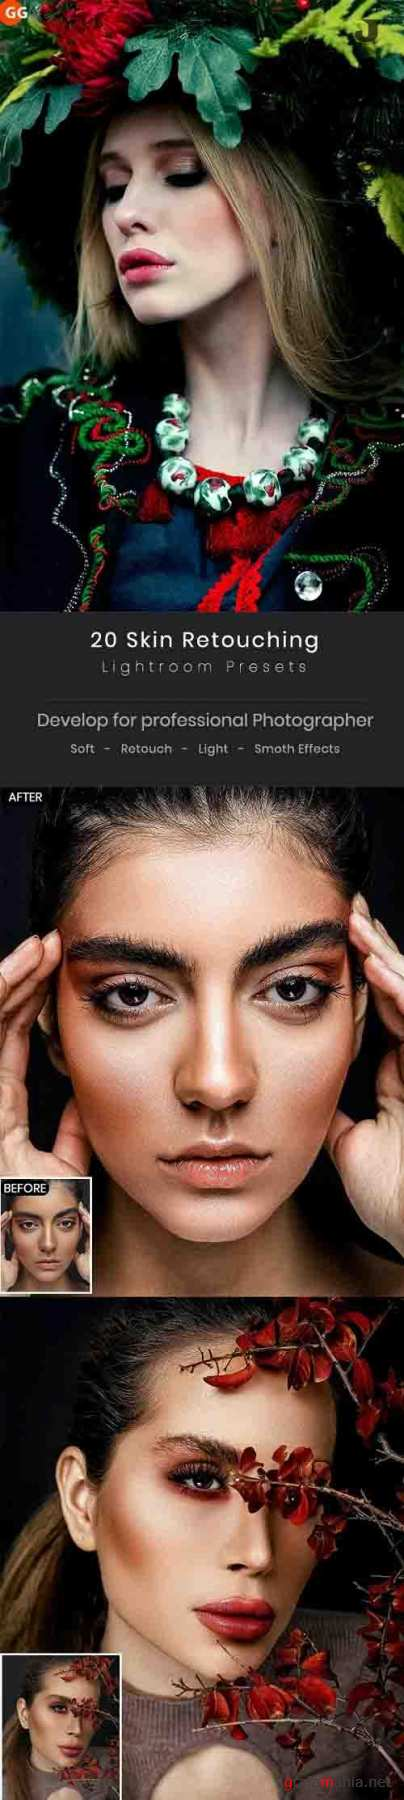 GraphicRiver - 20 Skin Retouching Lightroom Presets 30133828